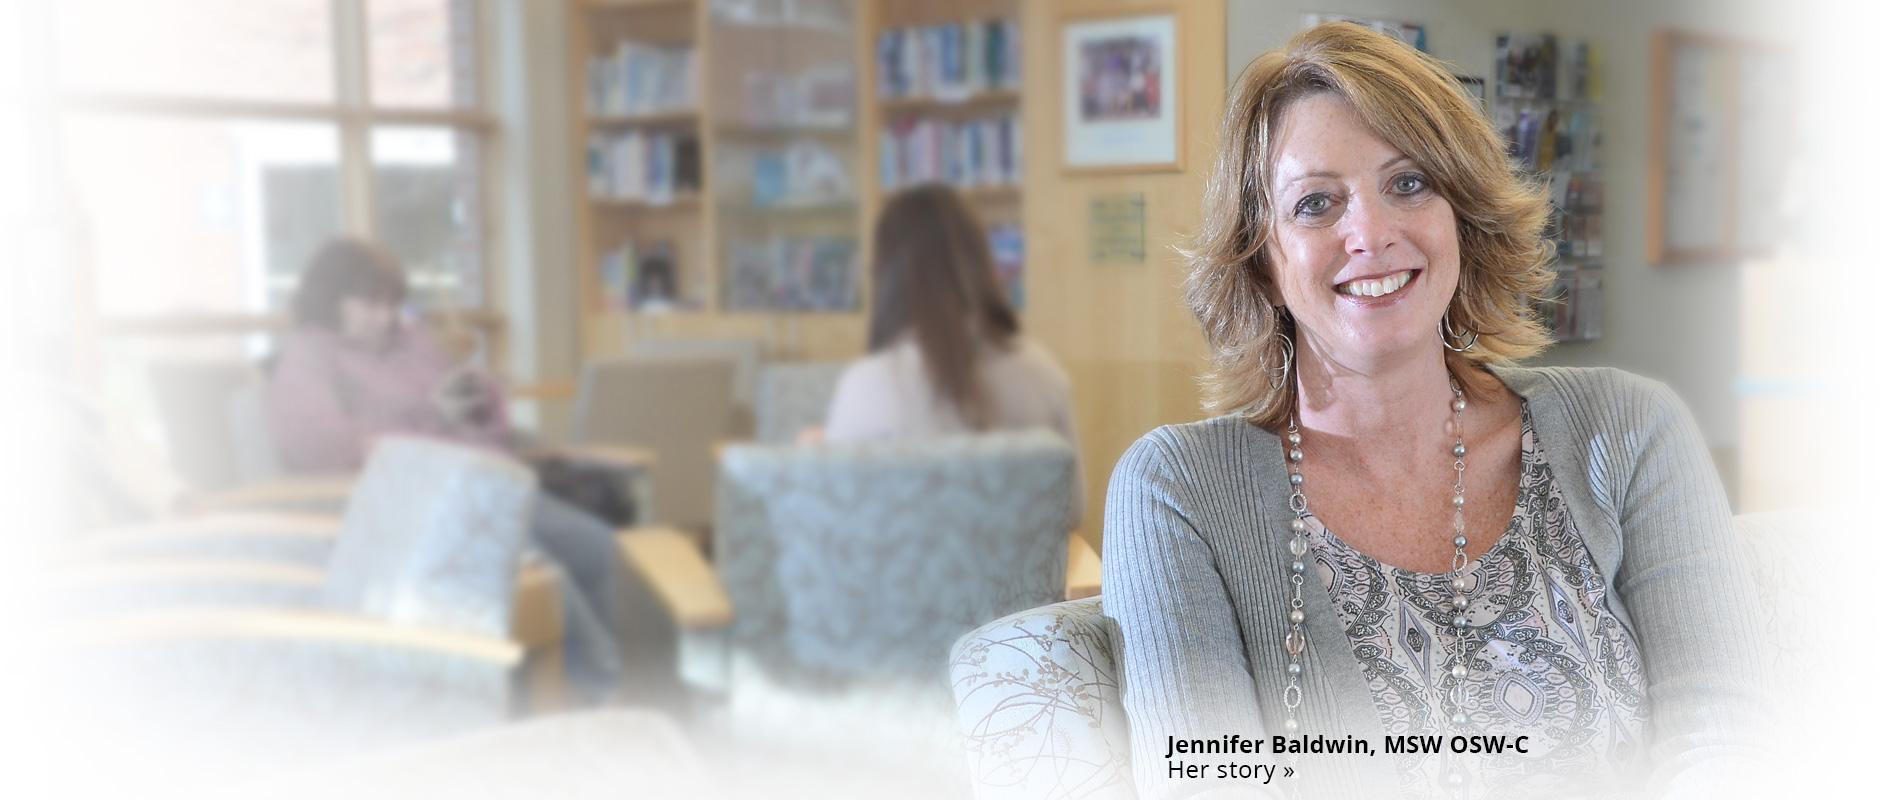 Jennifer Baldwin sitting in an office area